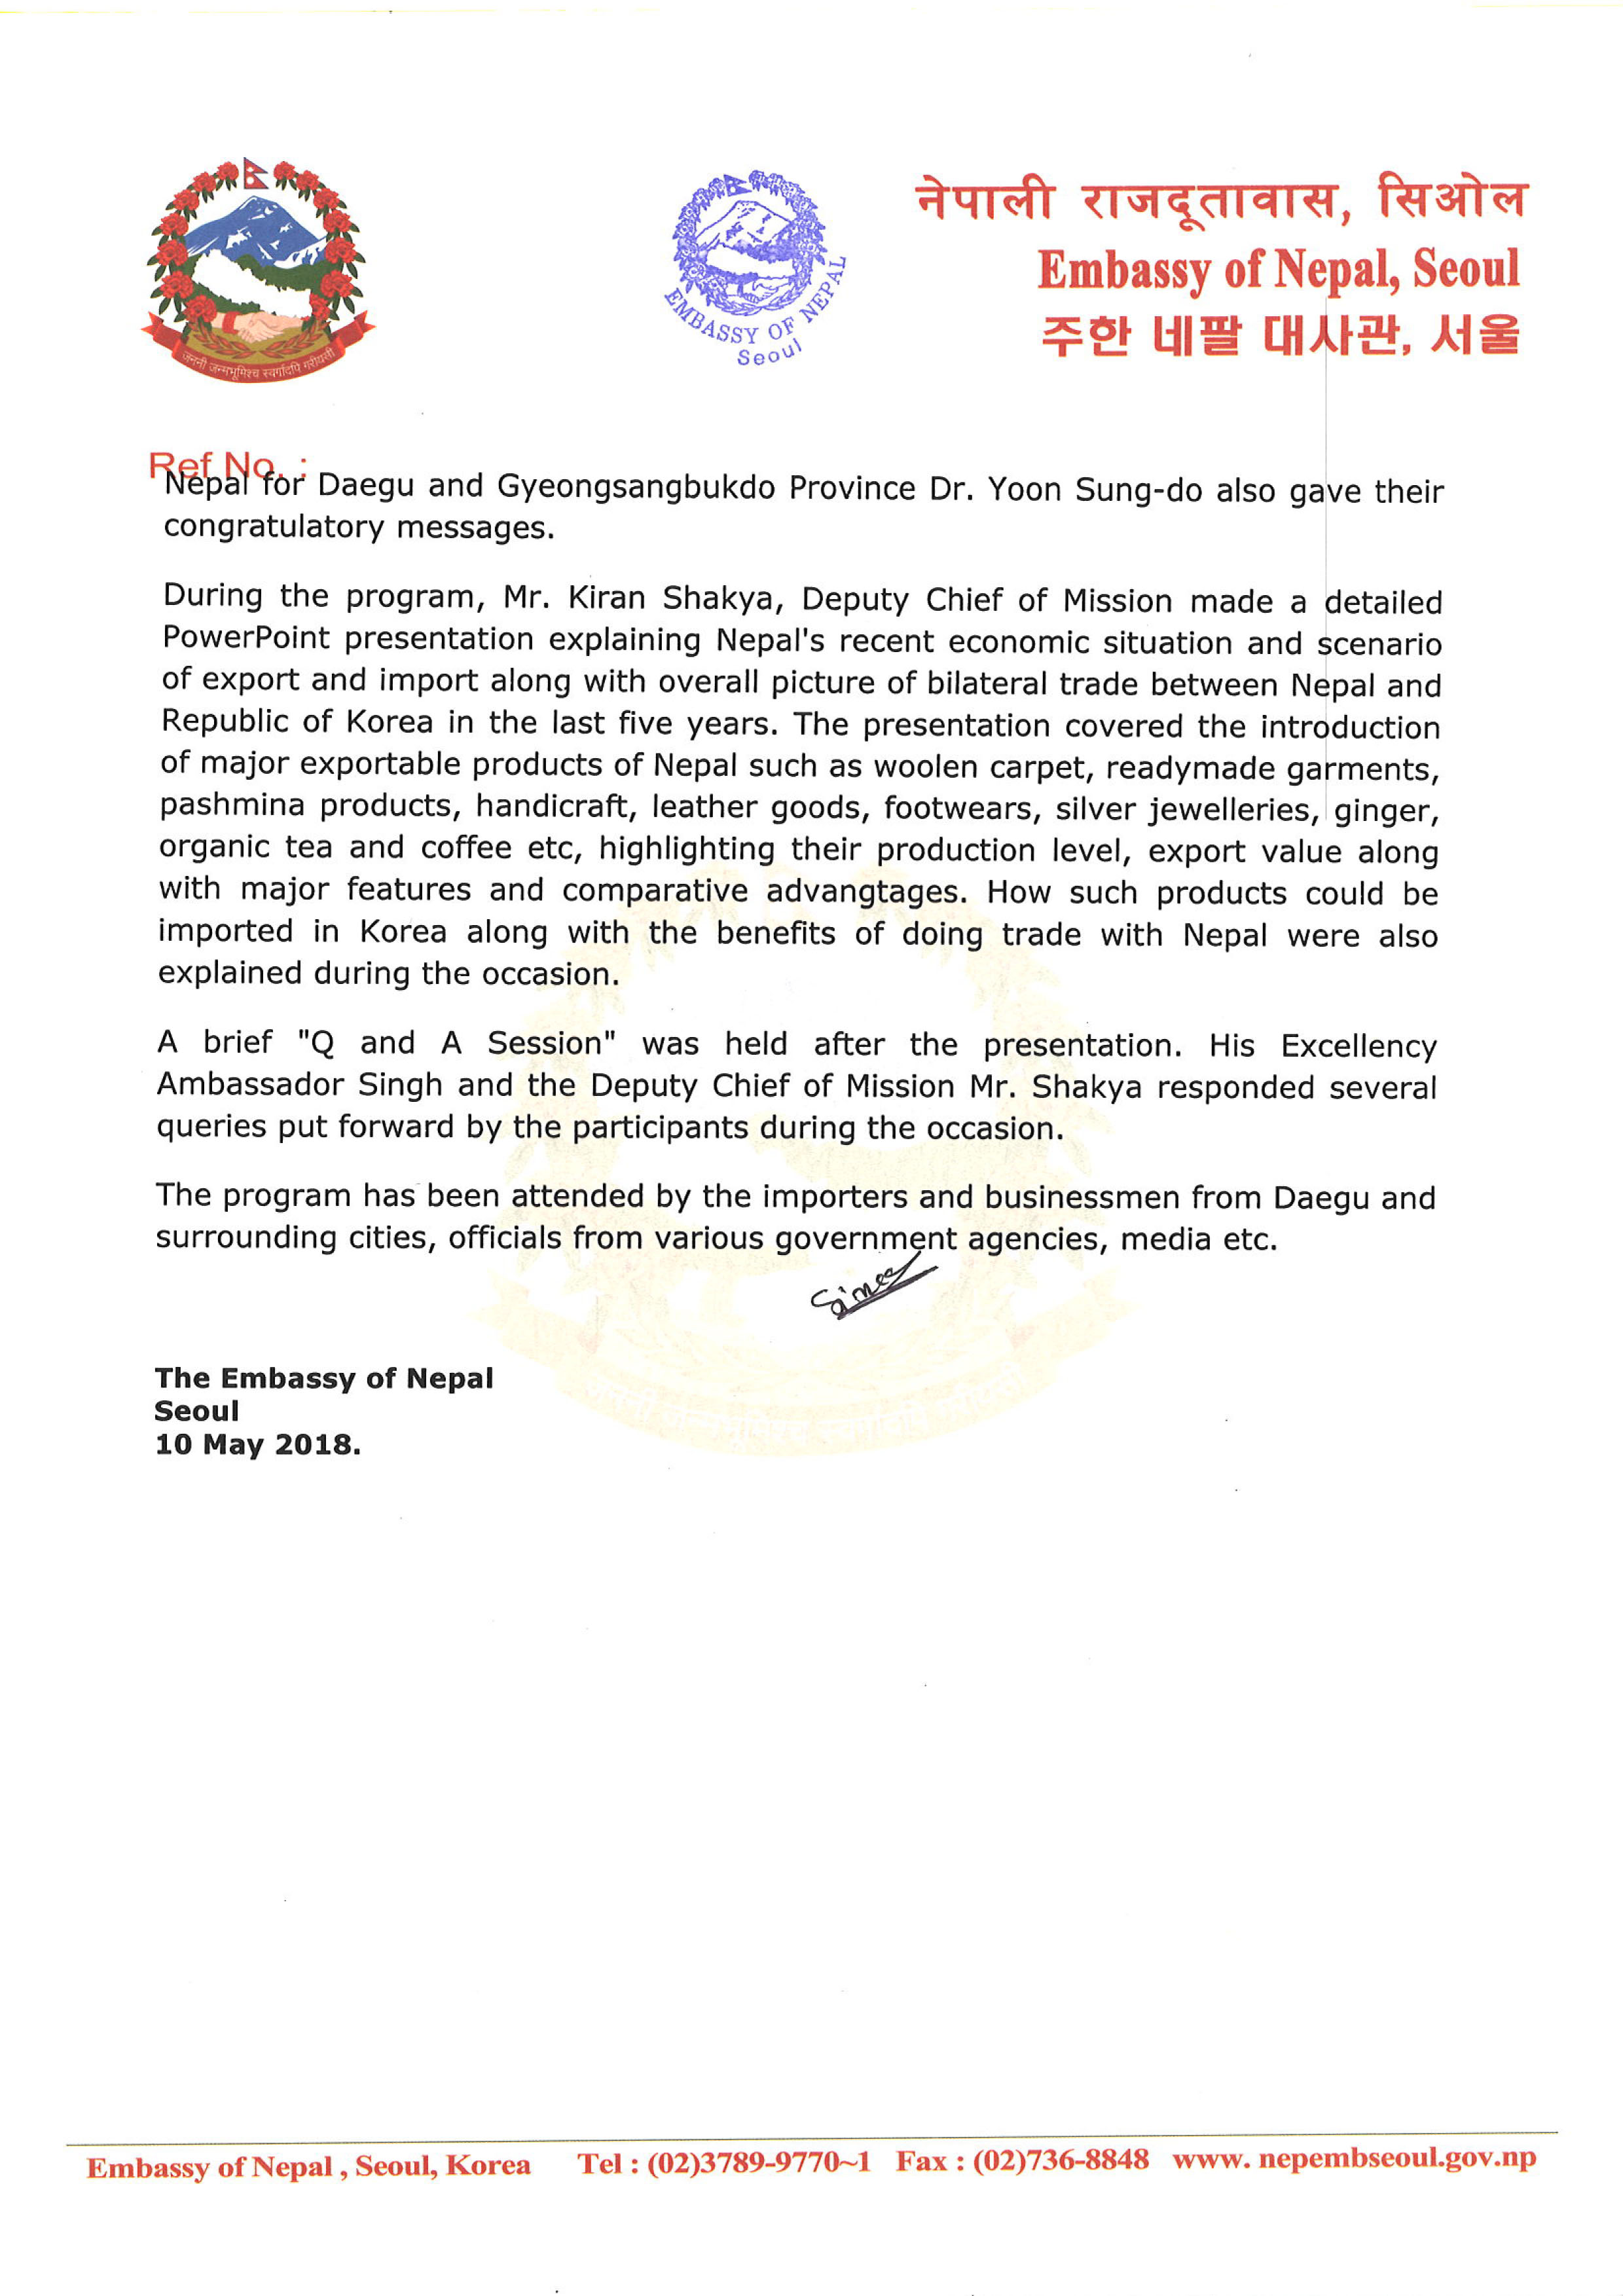 Press Release_Trade Potentials from Nepal-2 - Embassy of Nepal